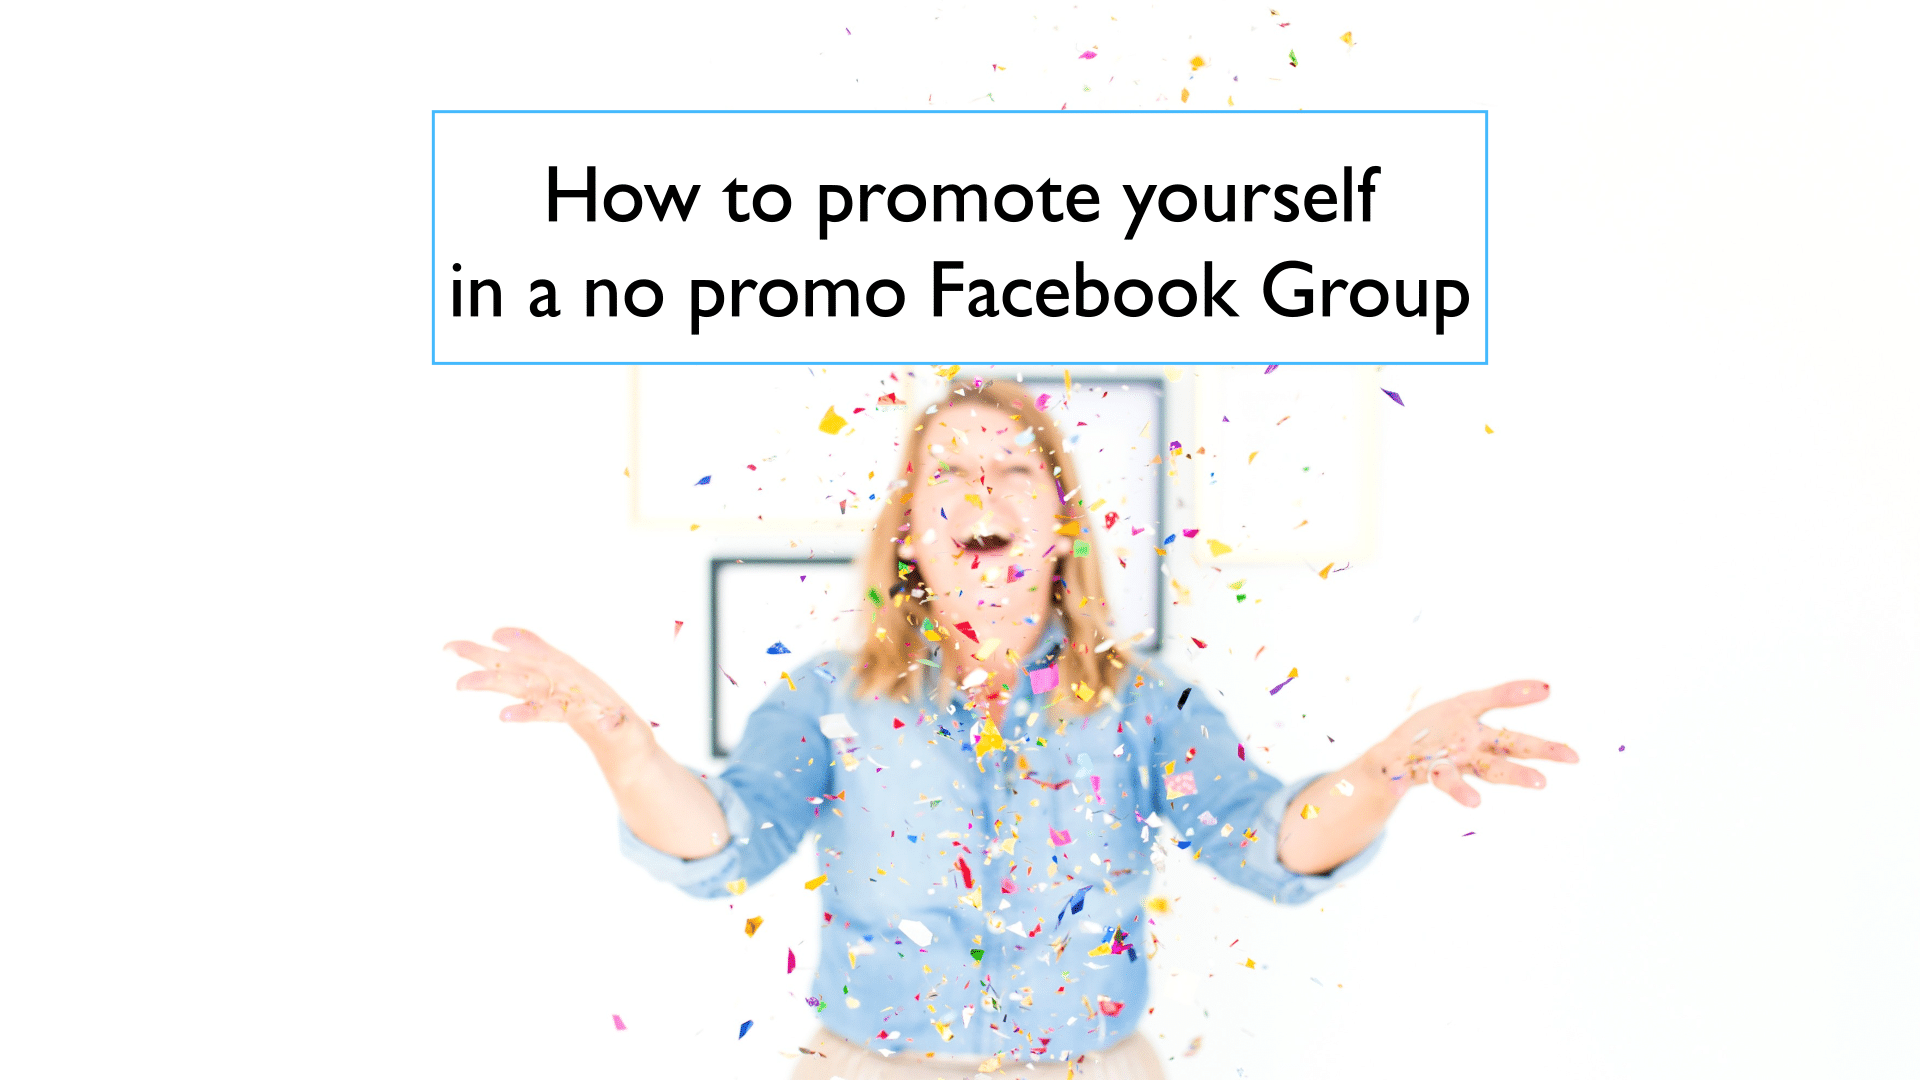 How to promote yourself in a no promo Facebook Group